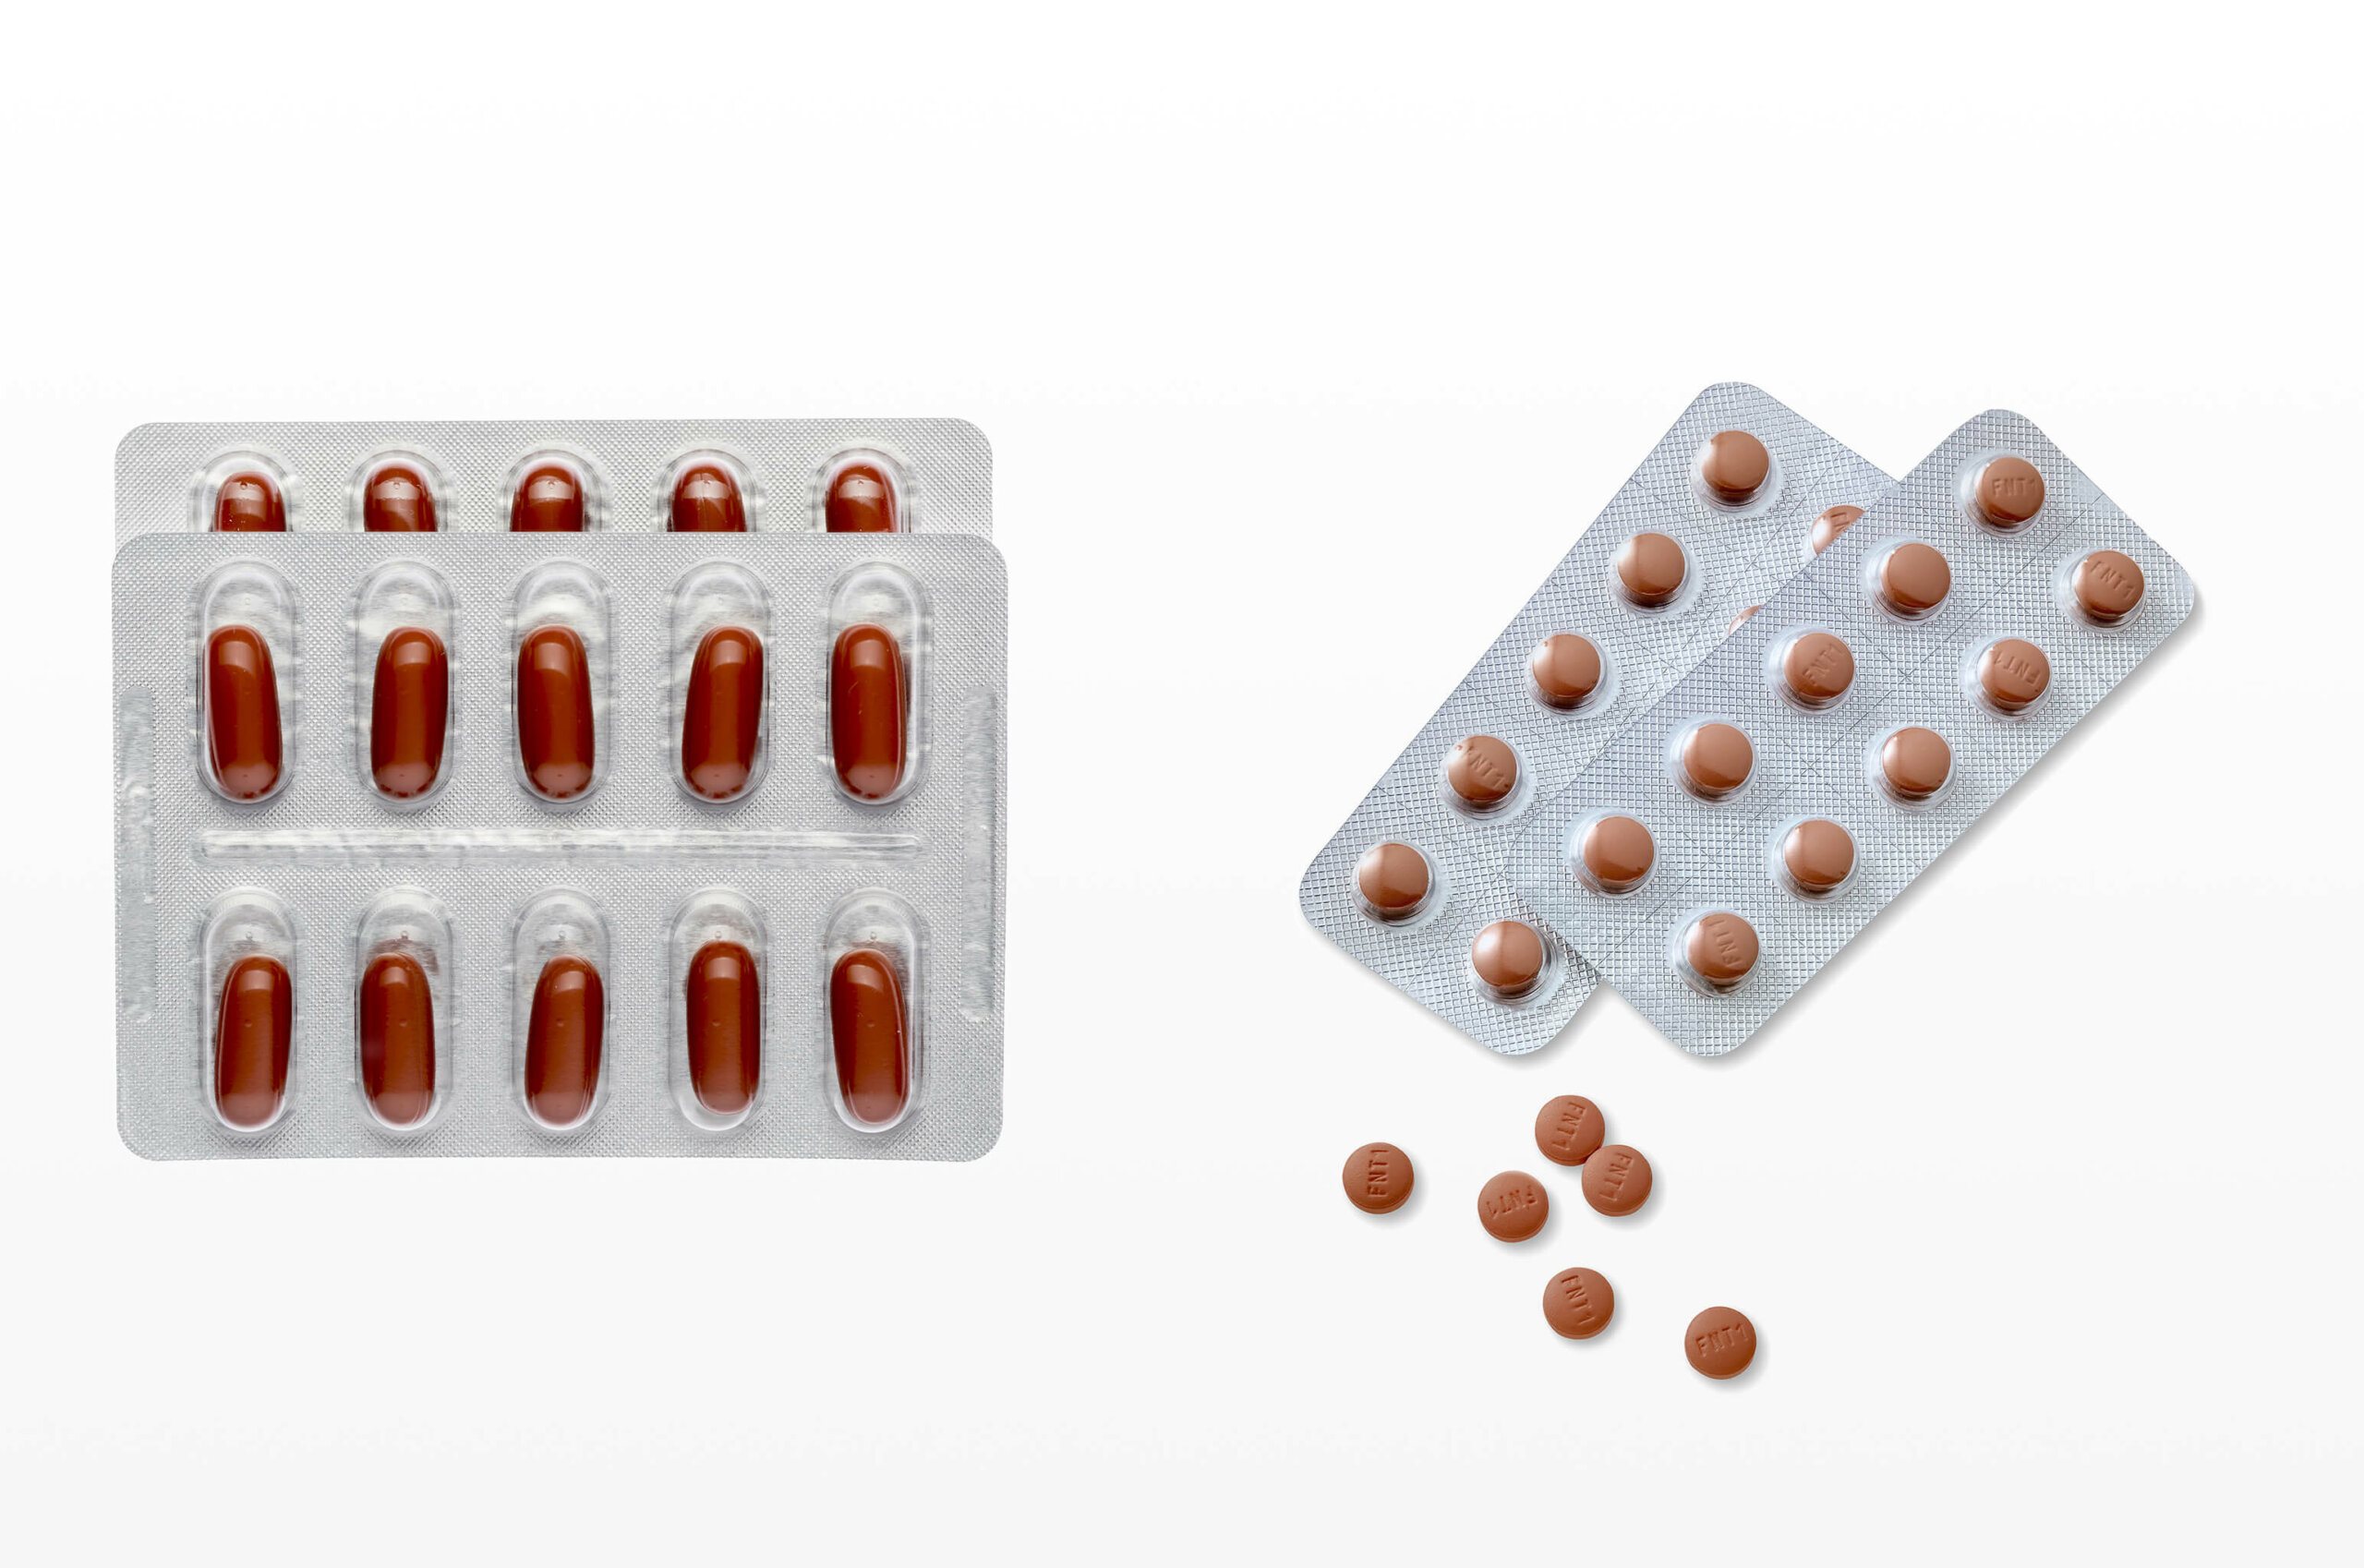 A double packet of oval, red dutasteride pills on the left, next to a double packet of circular, red finasteride pills on the right